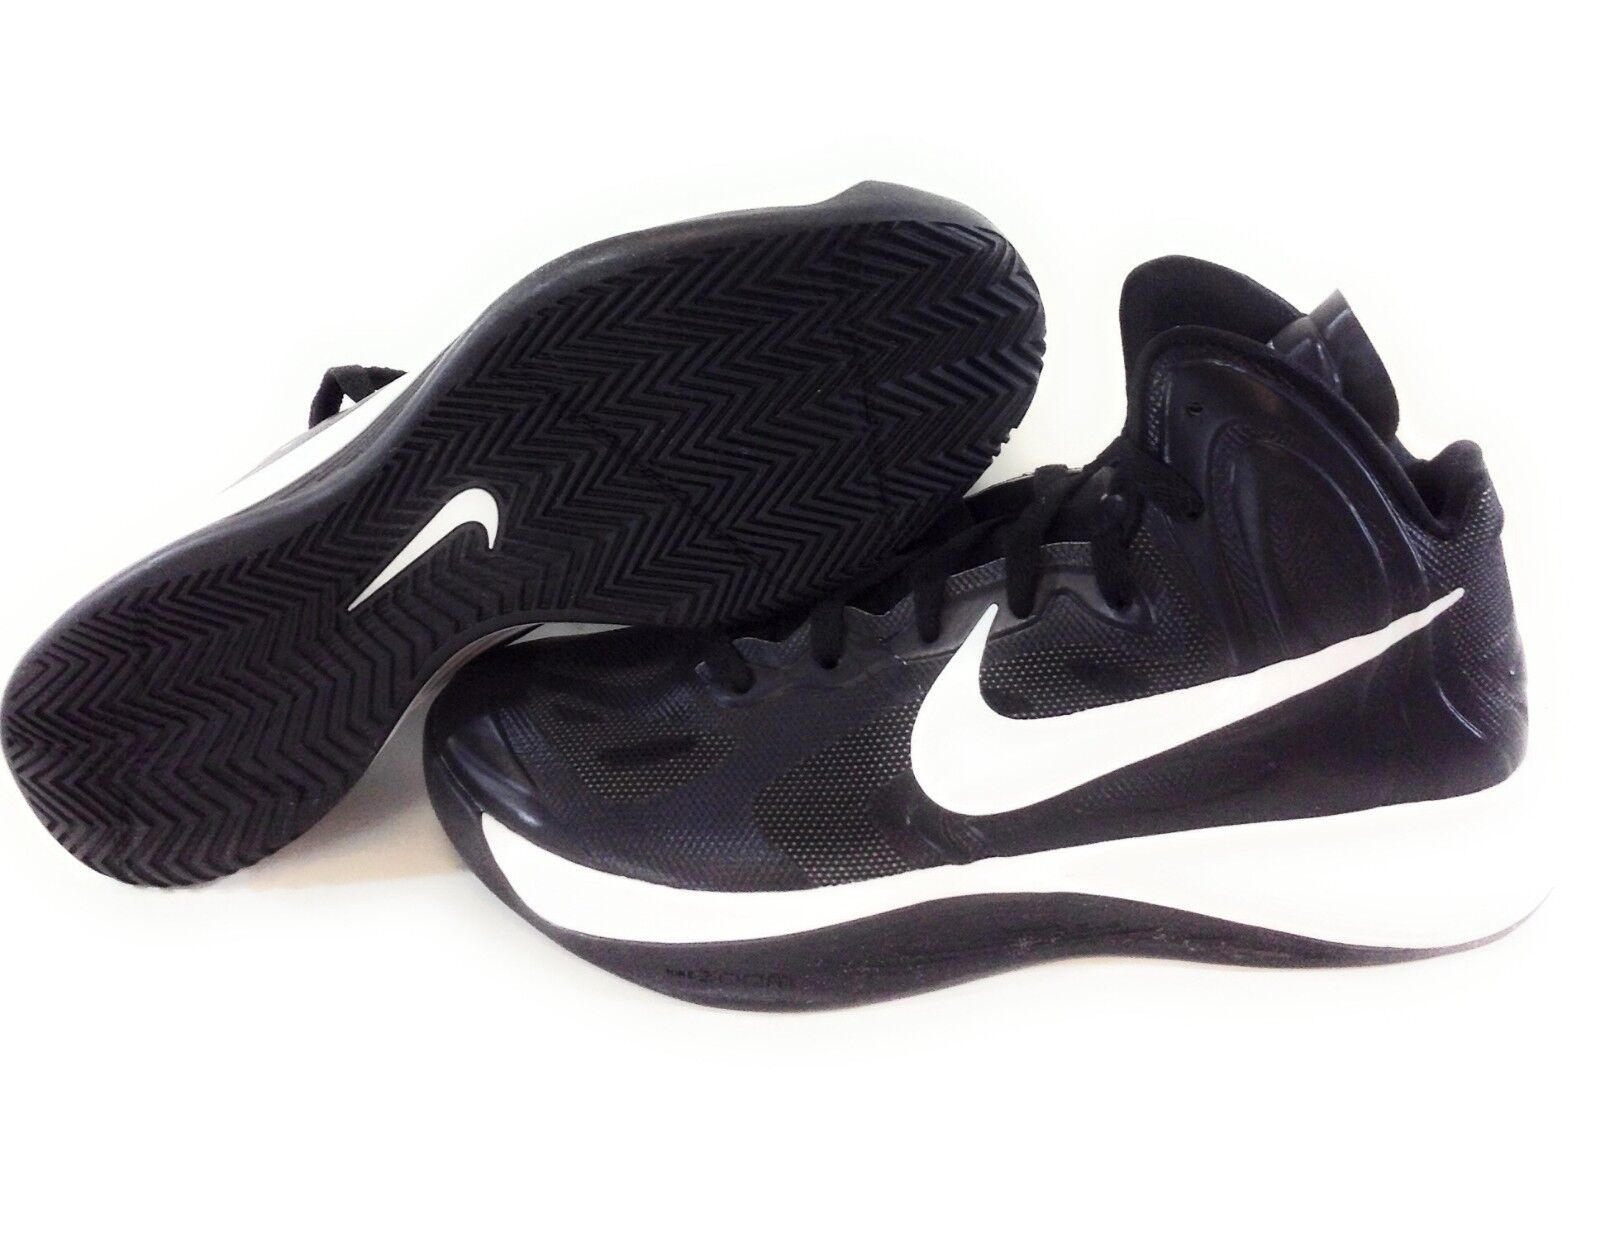 NEW Womens NIKE Hyperfuse TB 525021 001 Black White Basketball Sneakers shoes